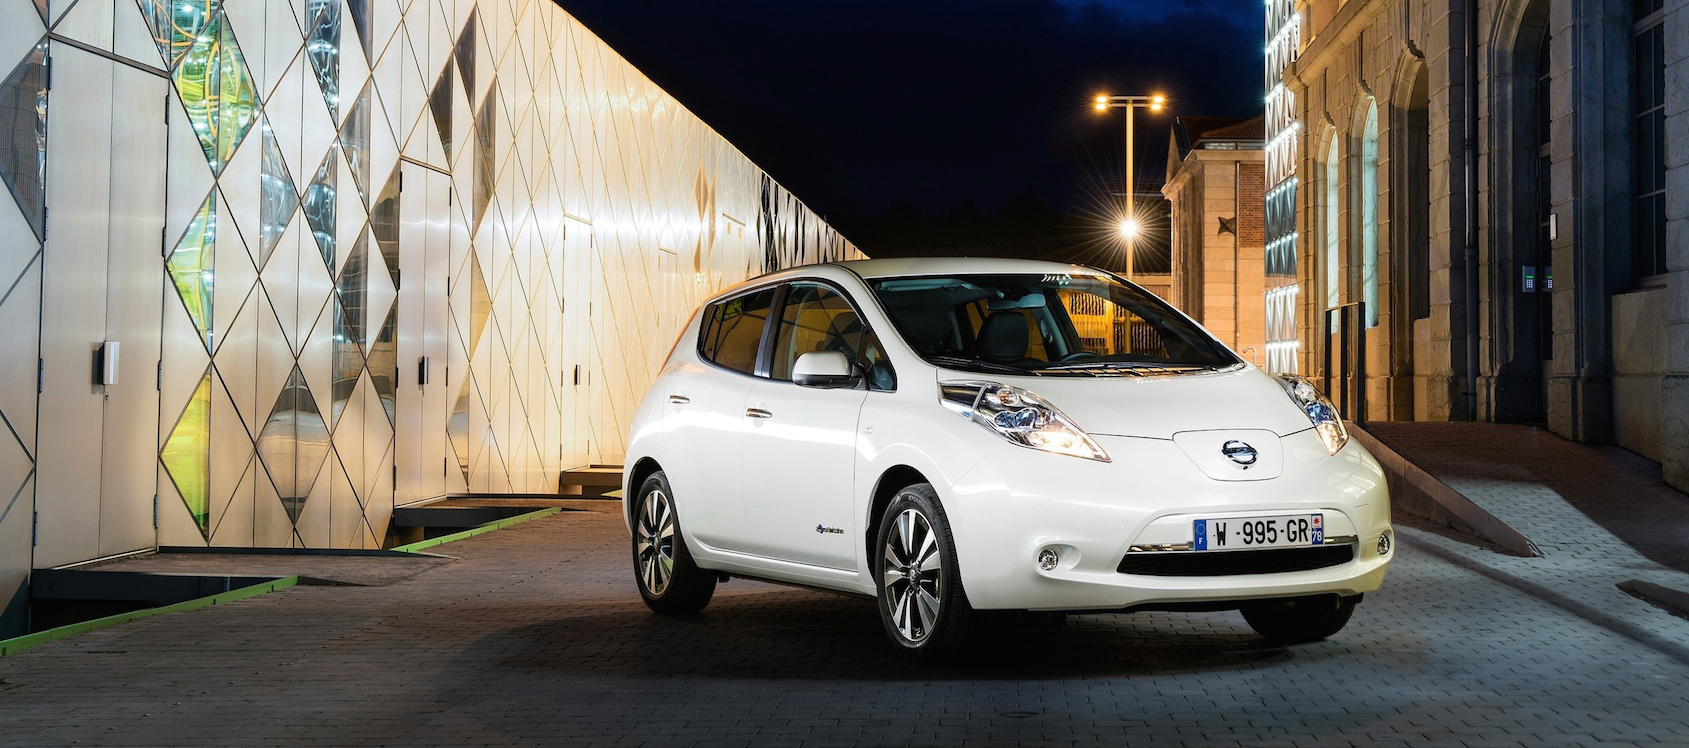 2016_nissan_leaf_emotion drive nantes